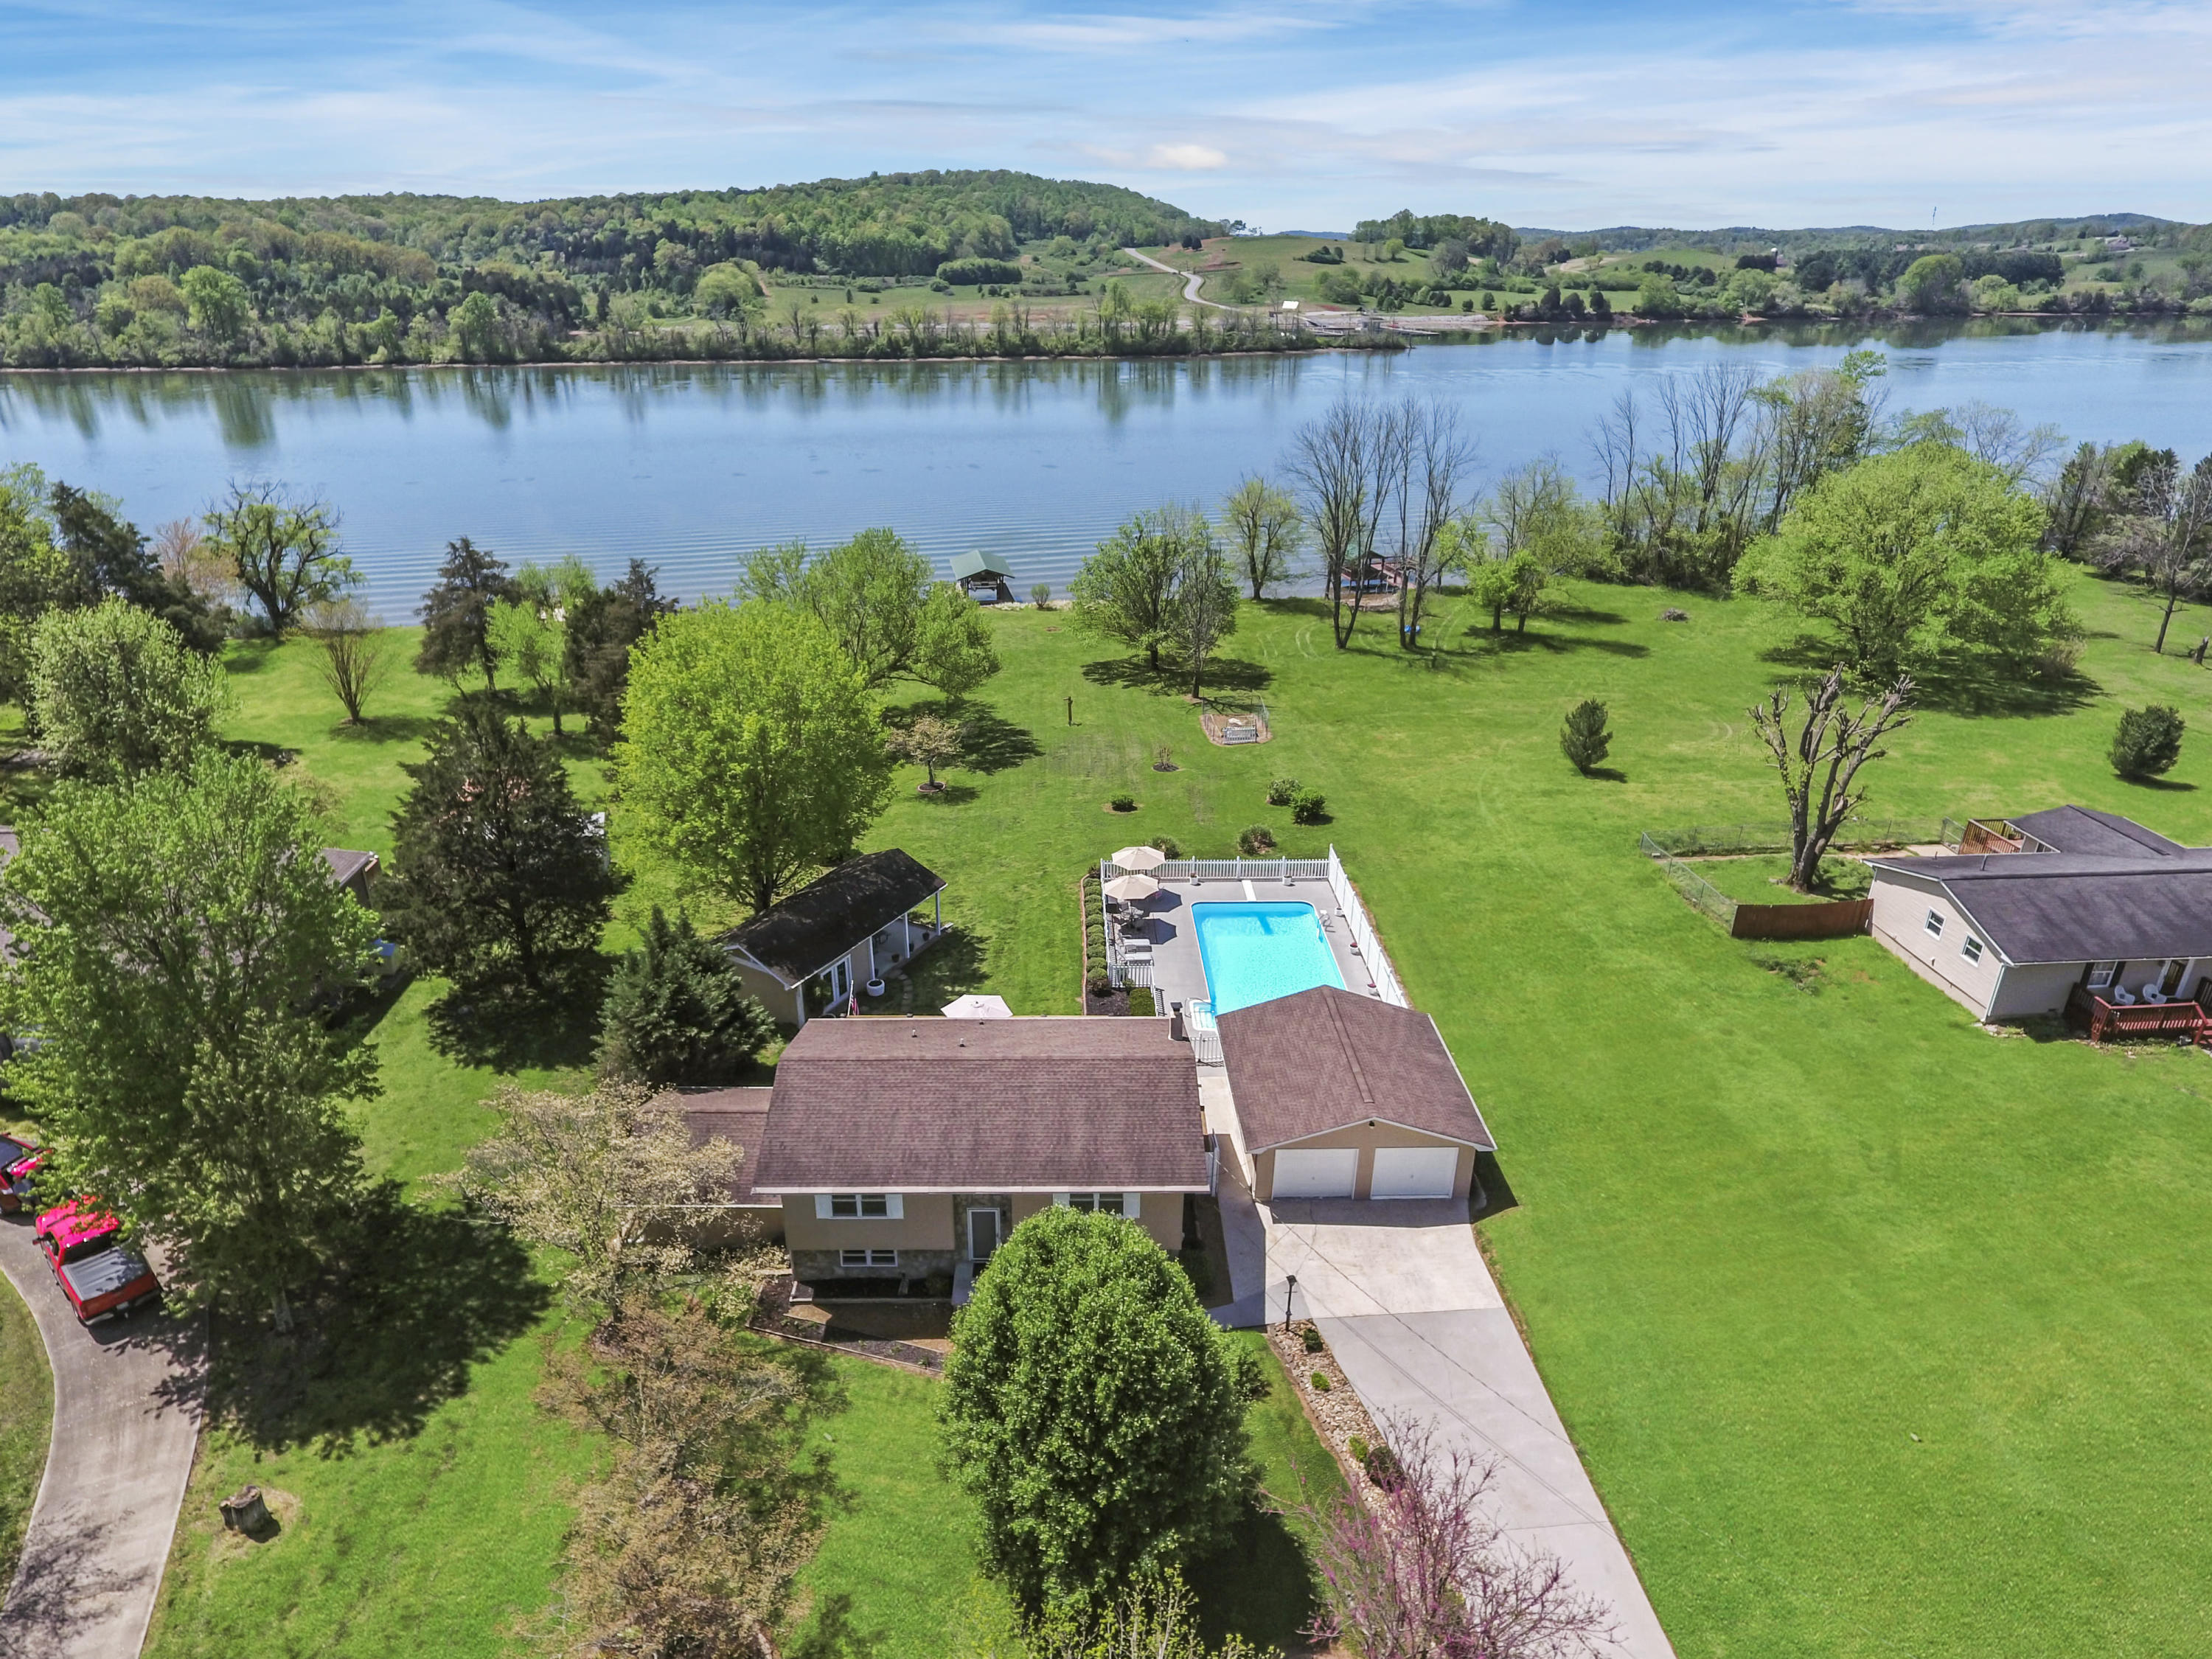 312 Lakeview Cove Drive: